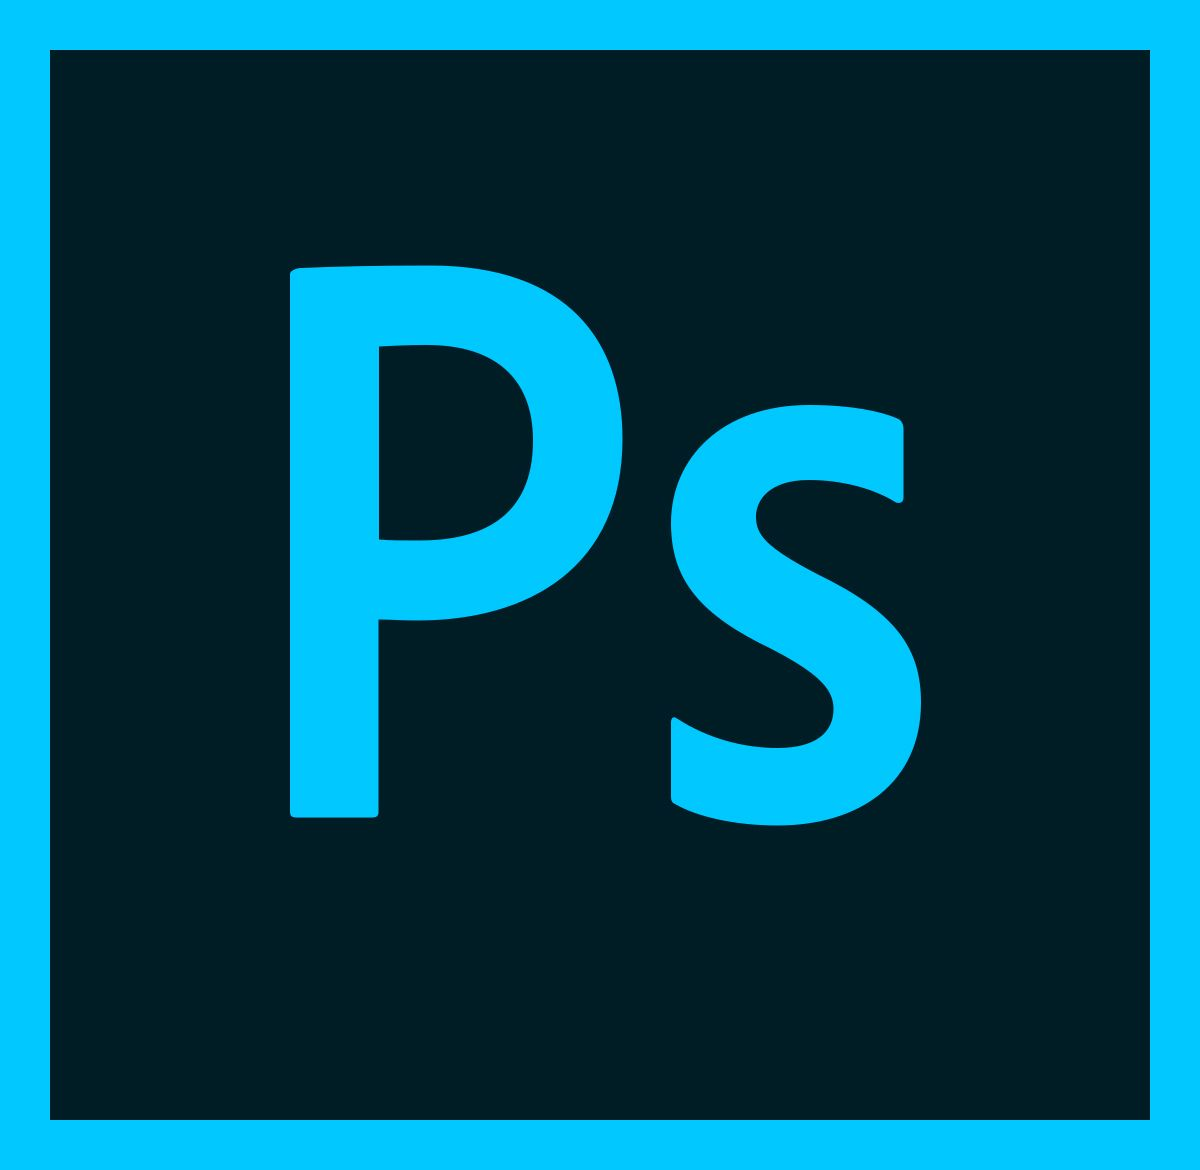 Download Photoshop How To Try Photoshop For Free Or With Creative Cloud Photoshop Logo Photoshop Shortcut Download Adobe Photoshop